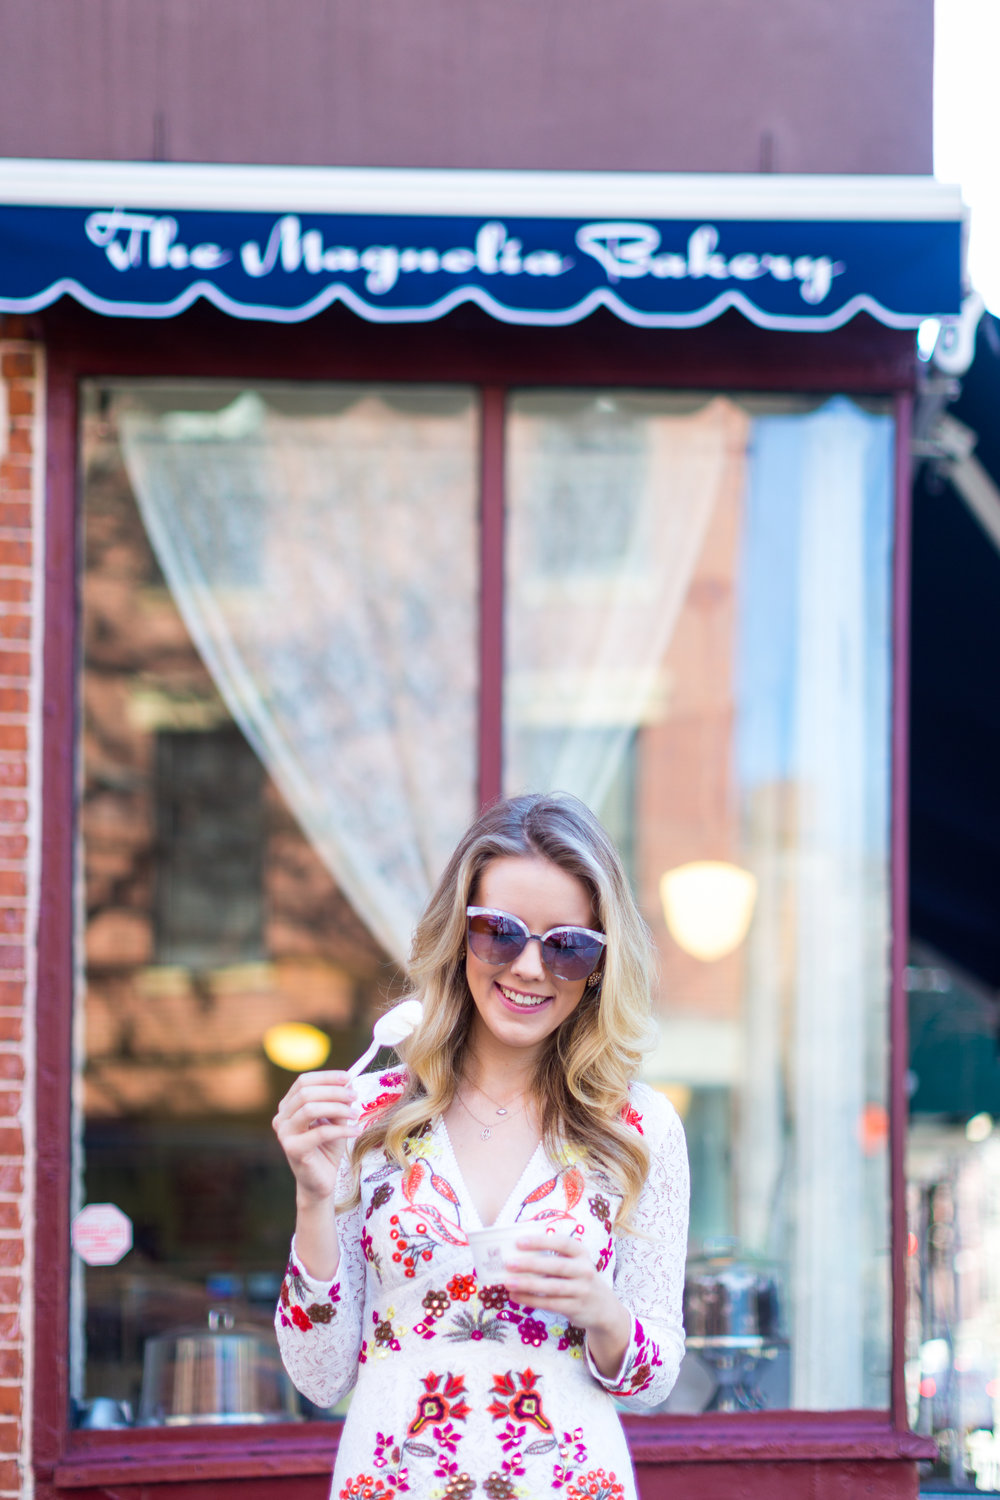 West Village NYC Embroidered Lace Outfit-8.jpg